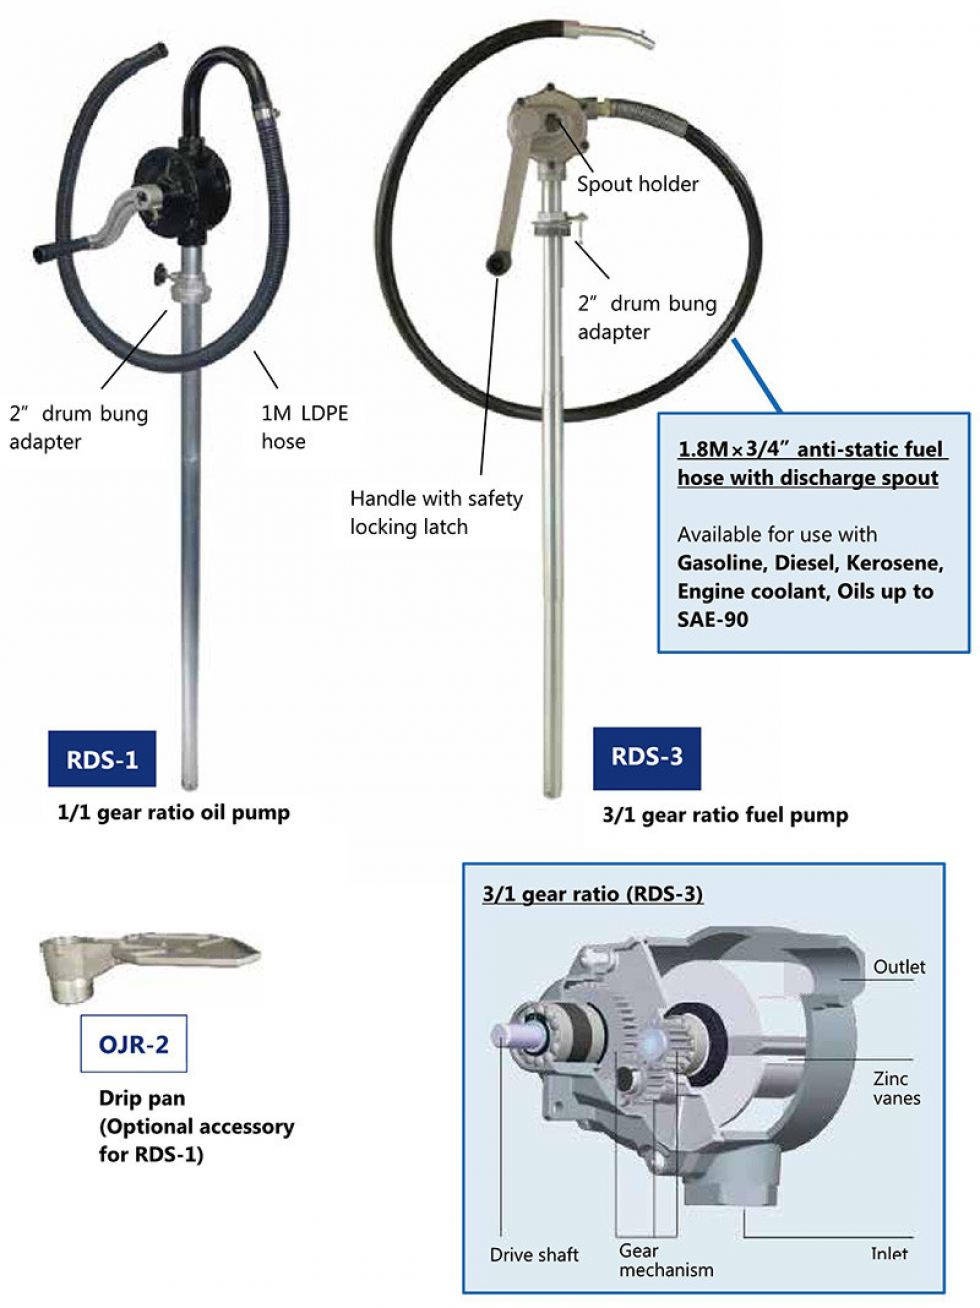 Hand Rotary Pumps (RDS-1/RDS-3)